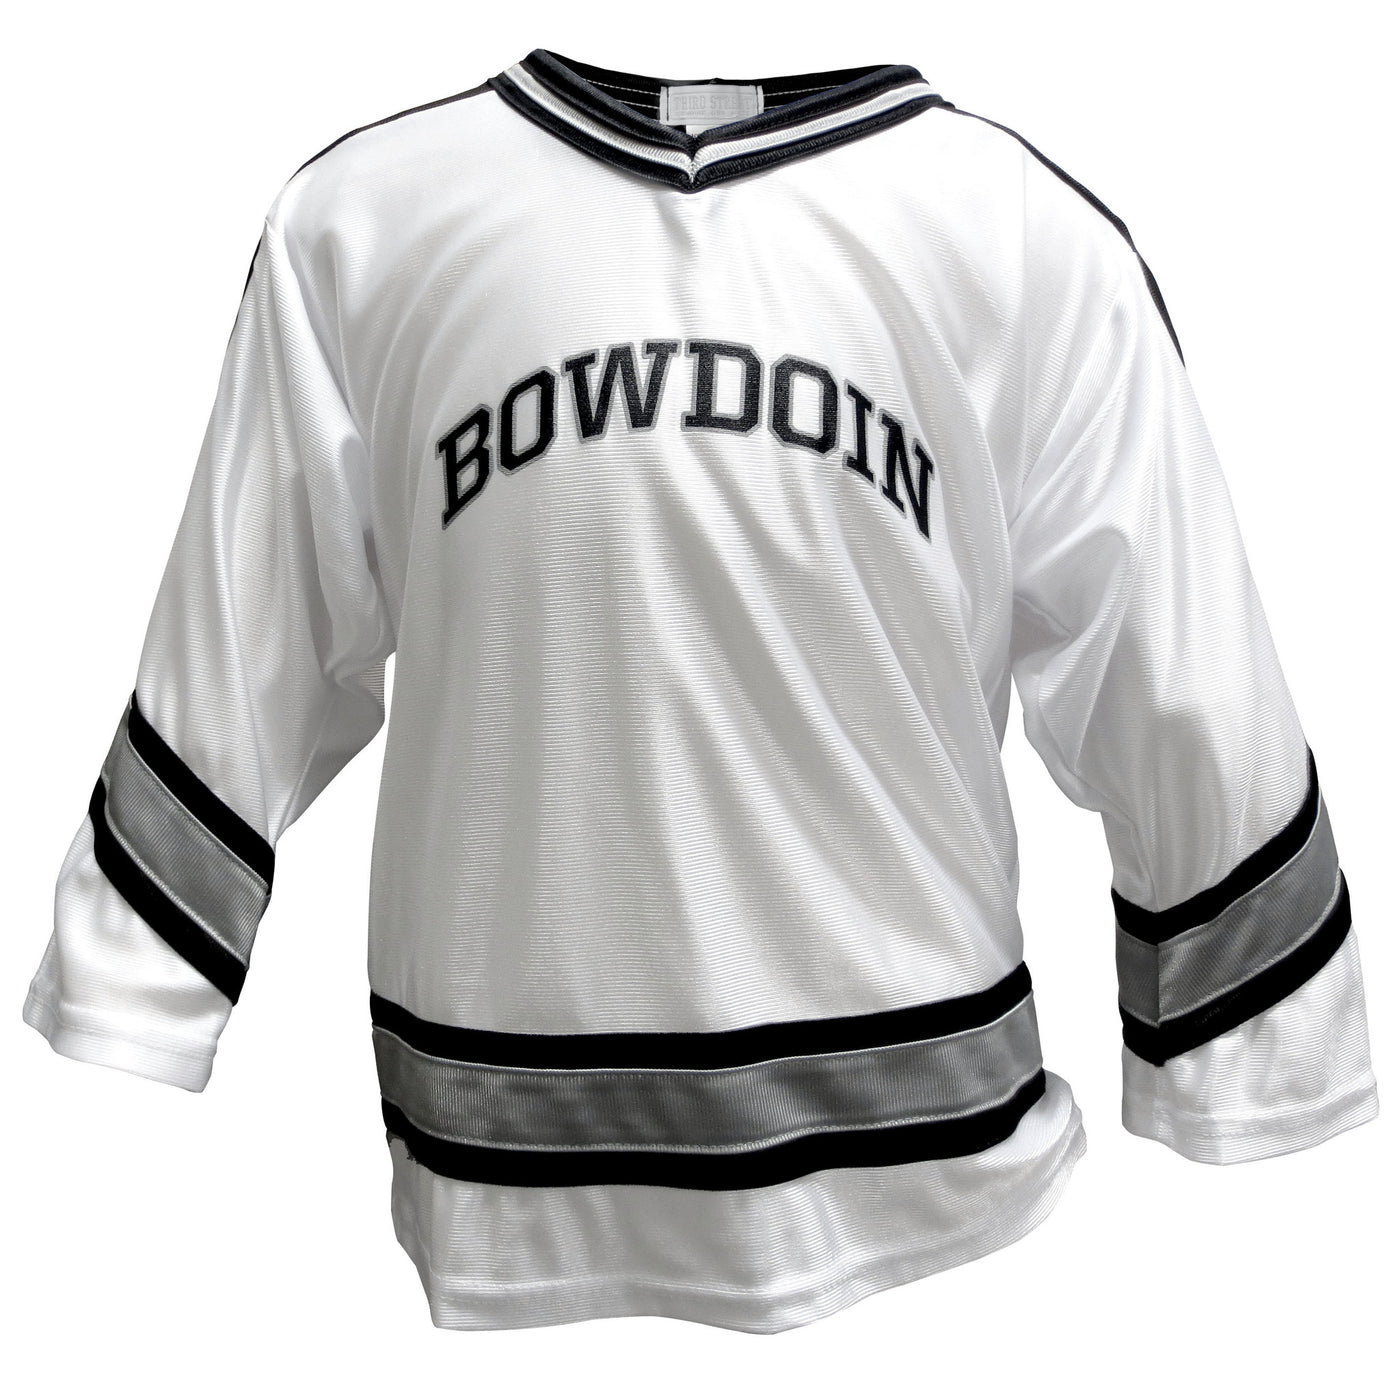 Children s Dazzle Hockey Jersey with Arched Bowdoin – The Bowdoin Store 151cd68eb42